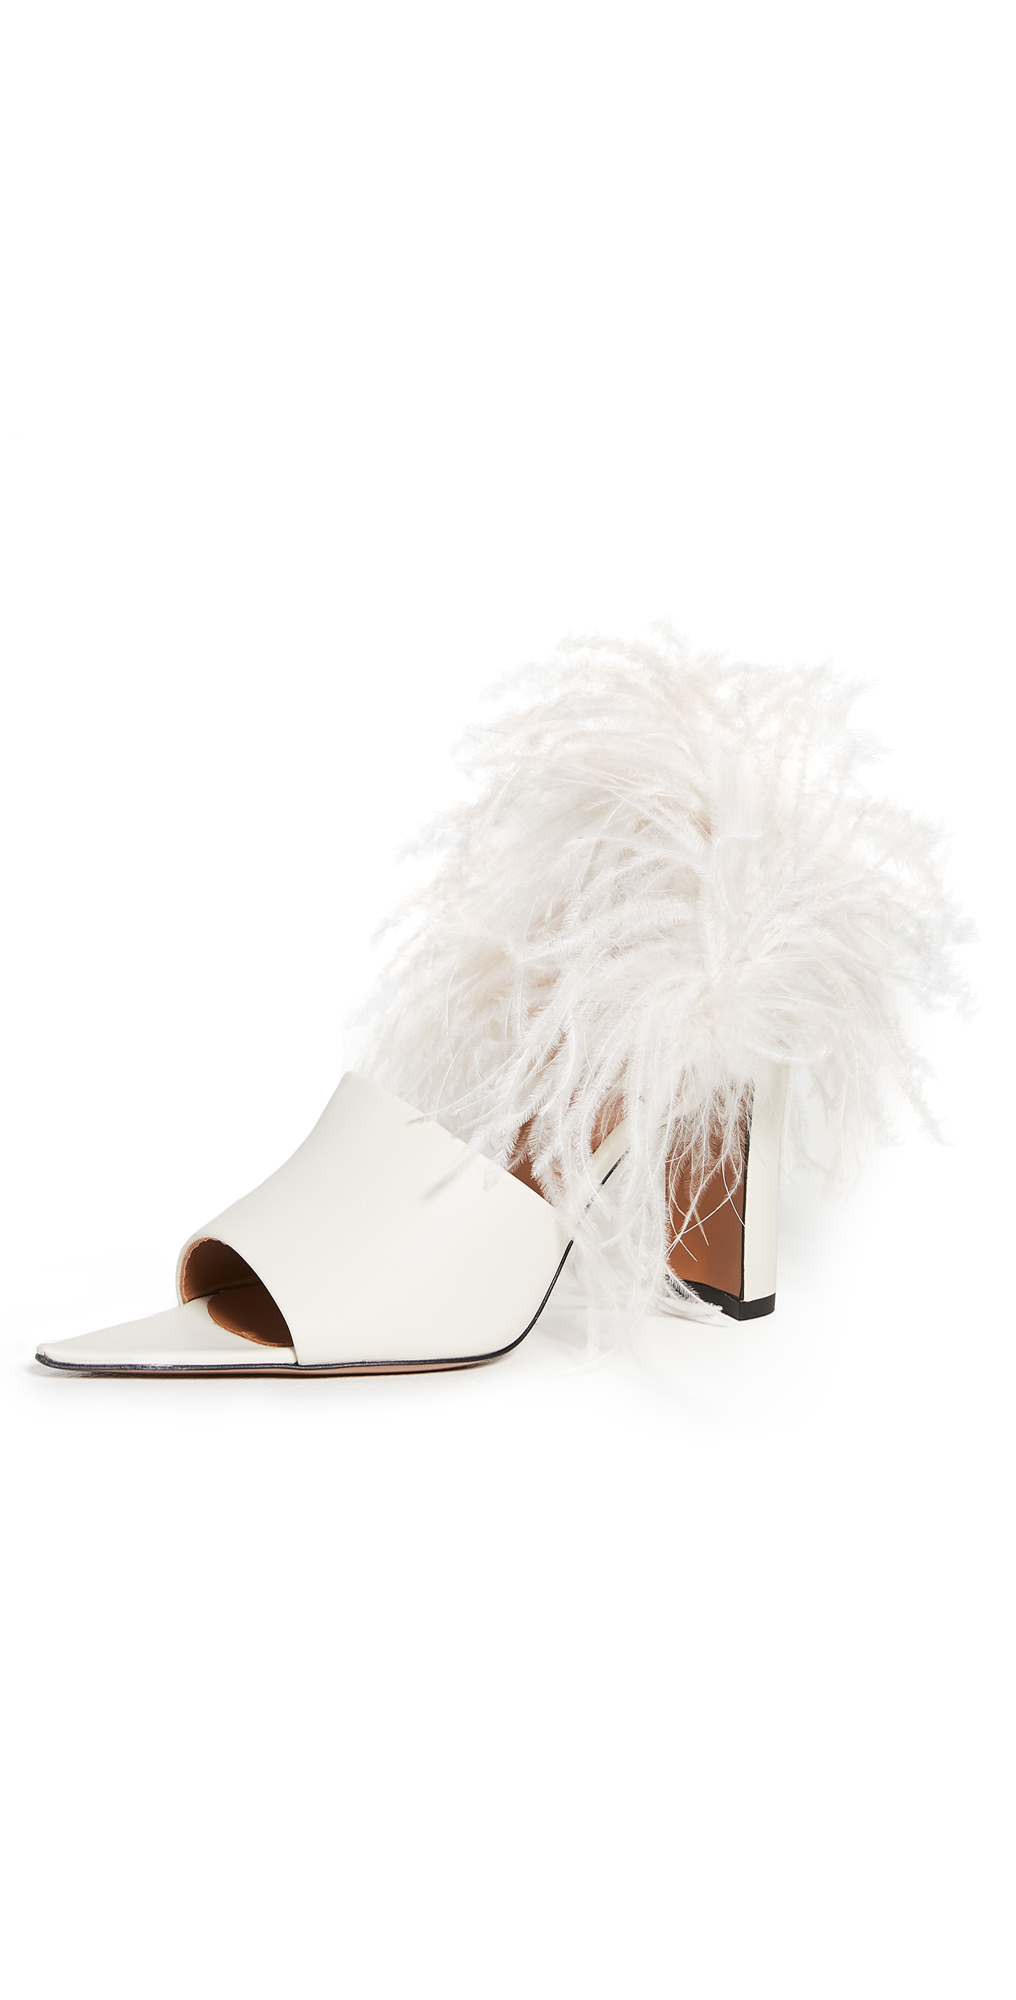 ATP Atelier Palagiano Feather Pumps